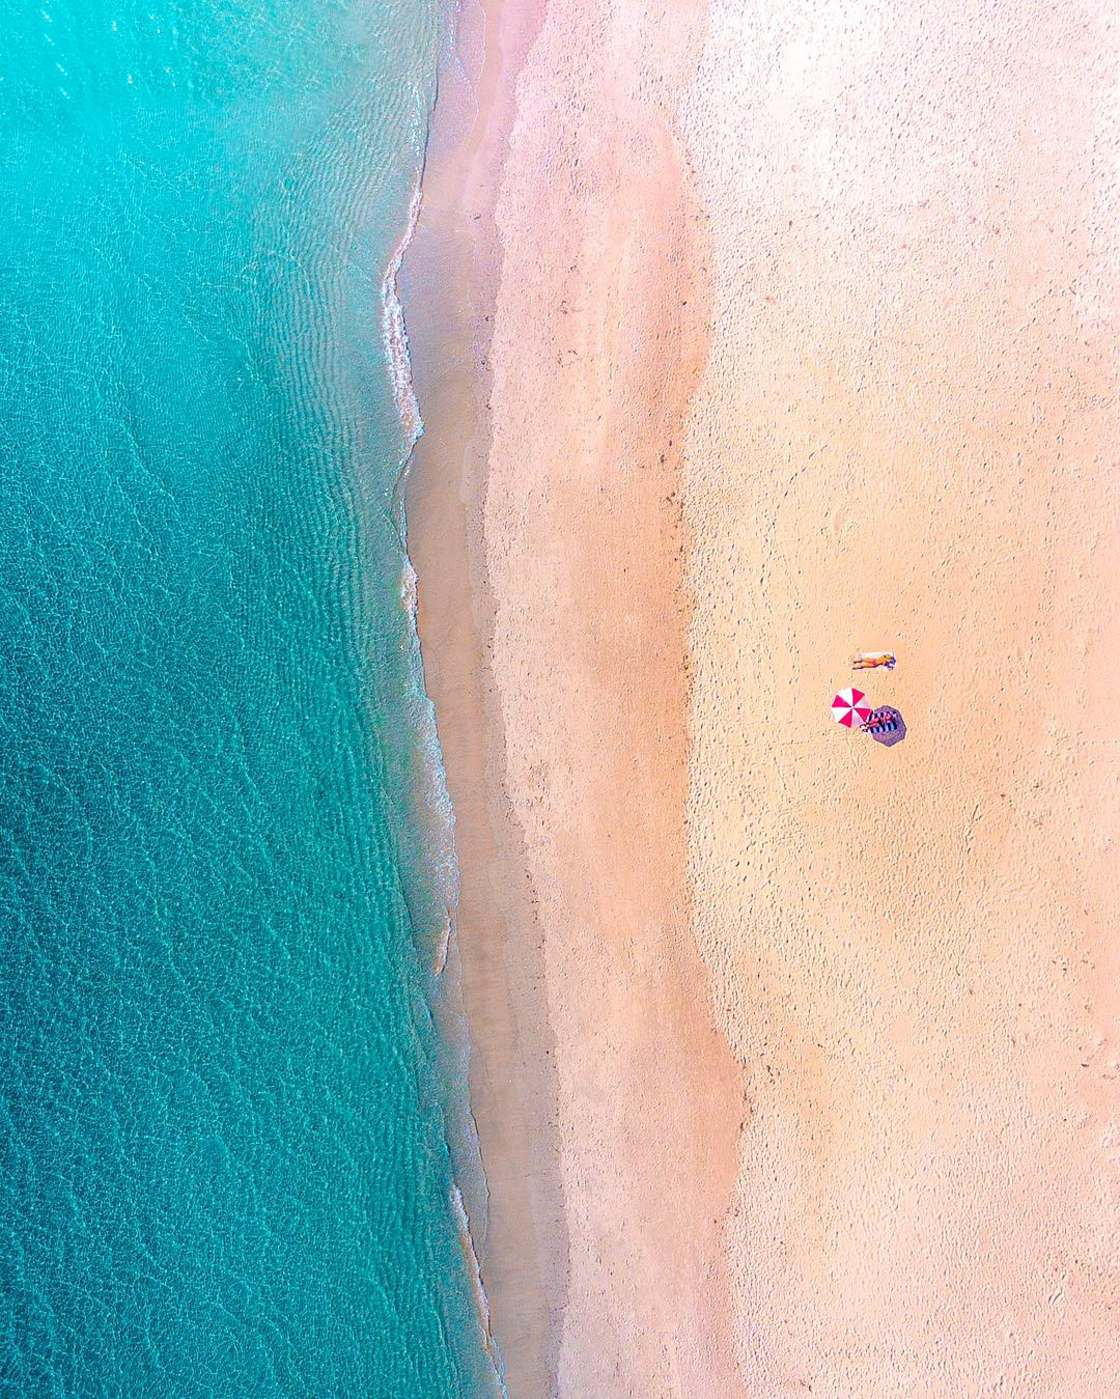 Drone Paradise - The beautiful aerial photographs of Mr BO